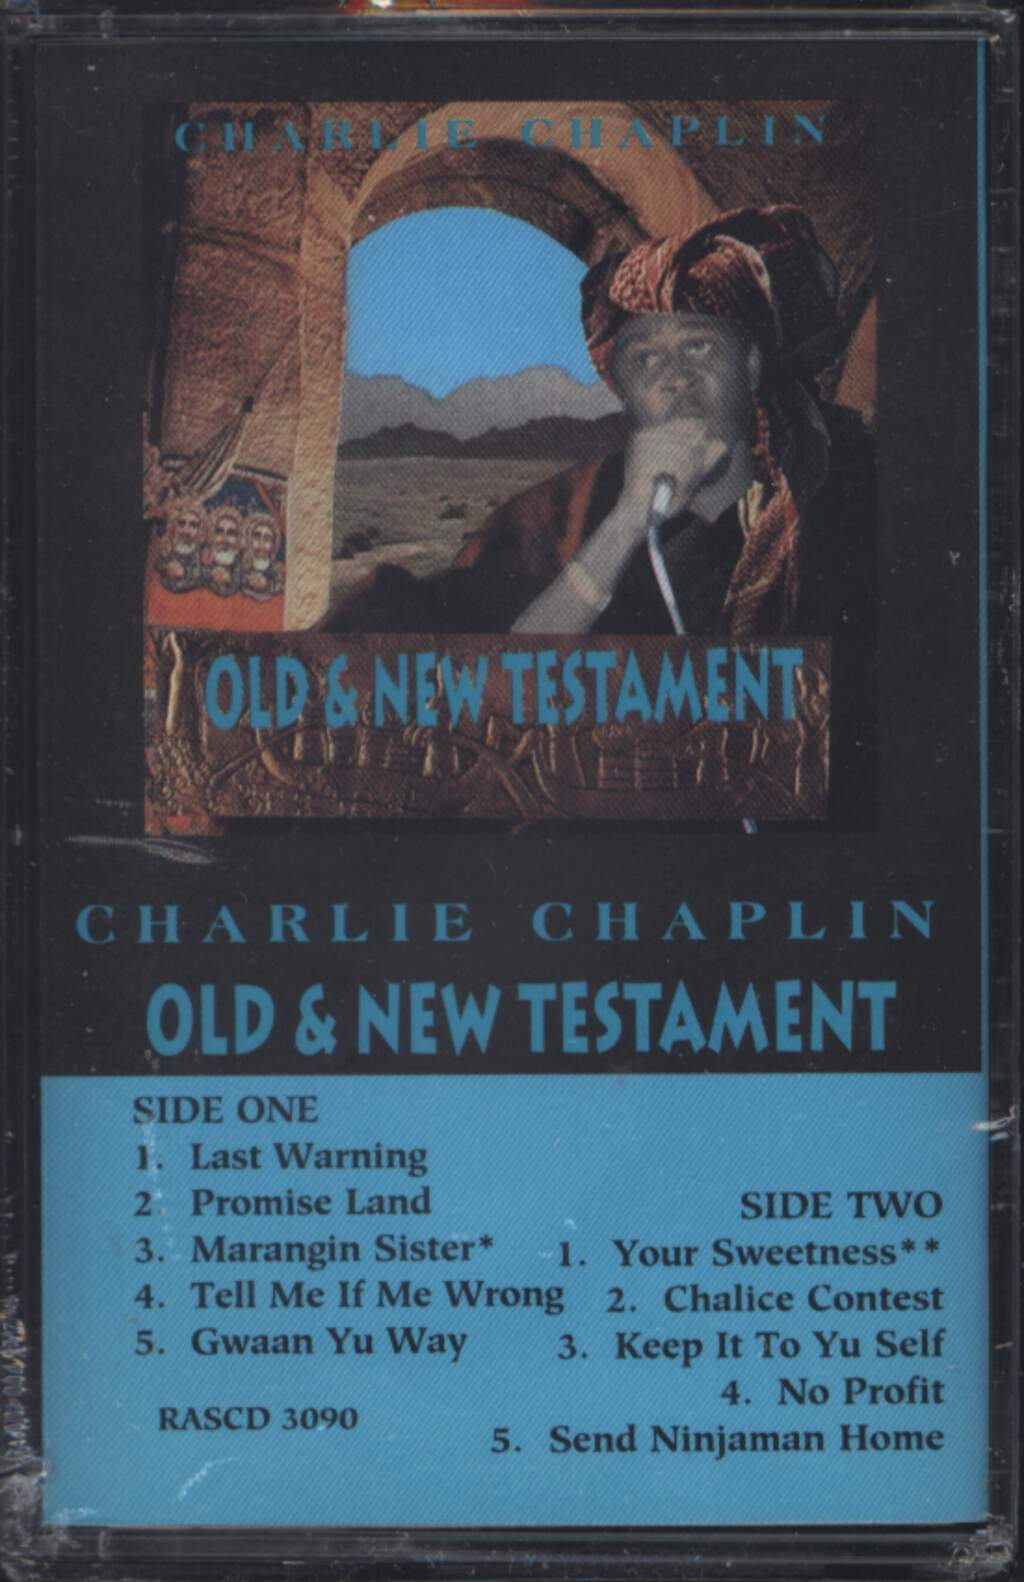 Charlie Chaplin: Old & New Testament, Compact Cassette